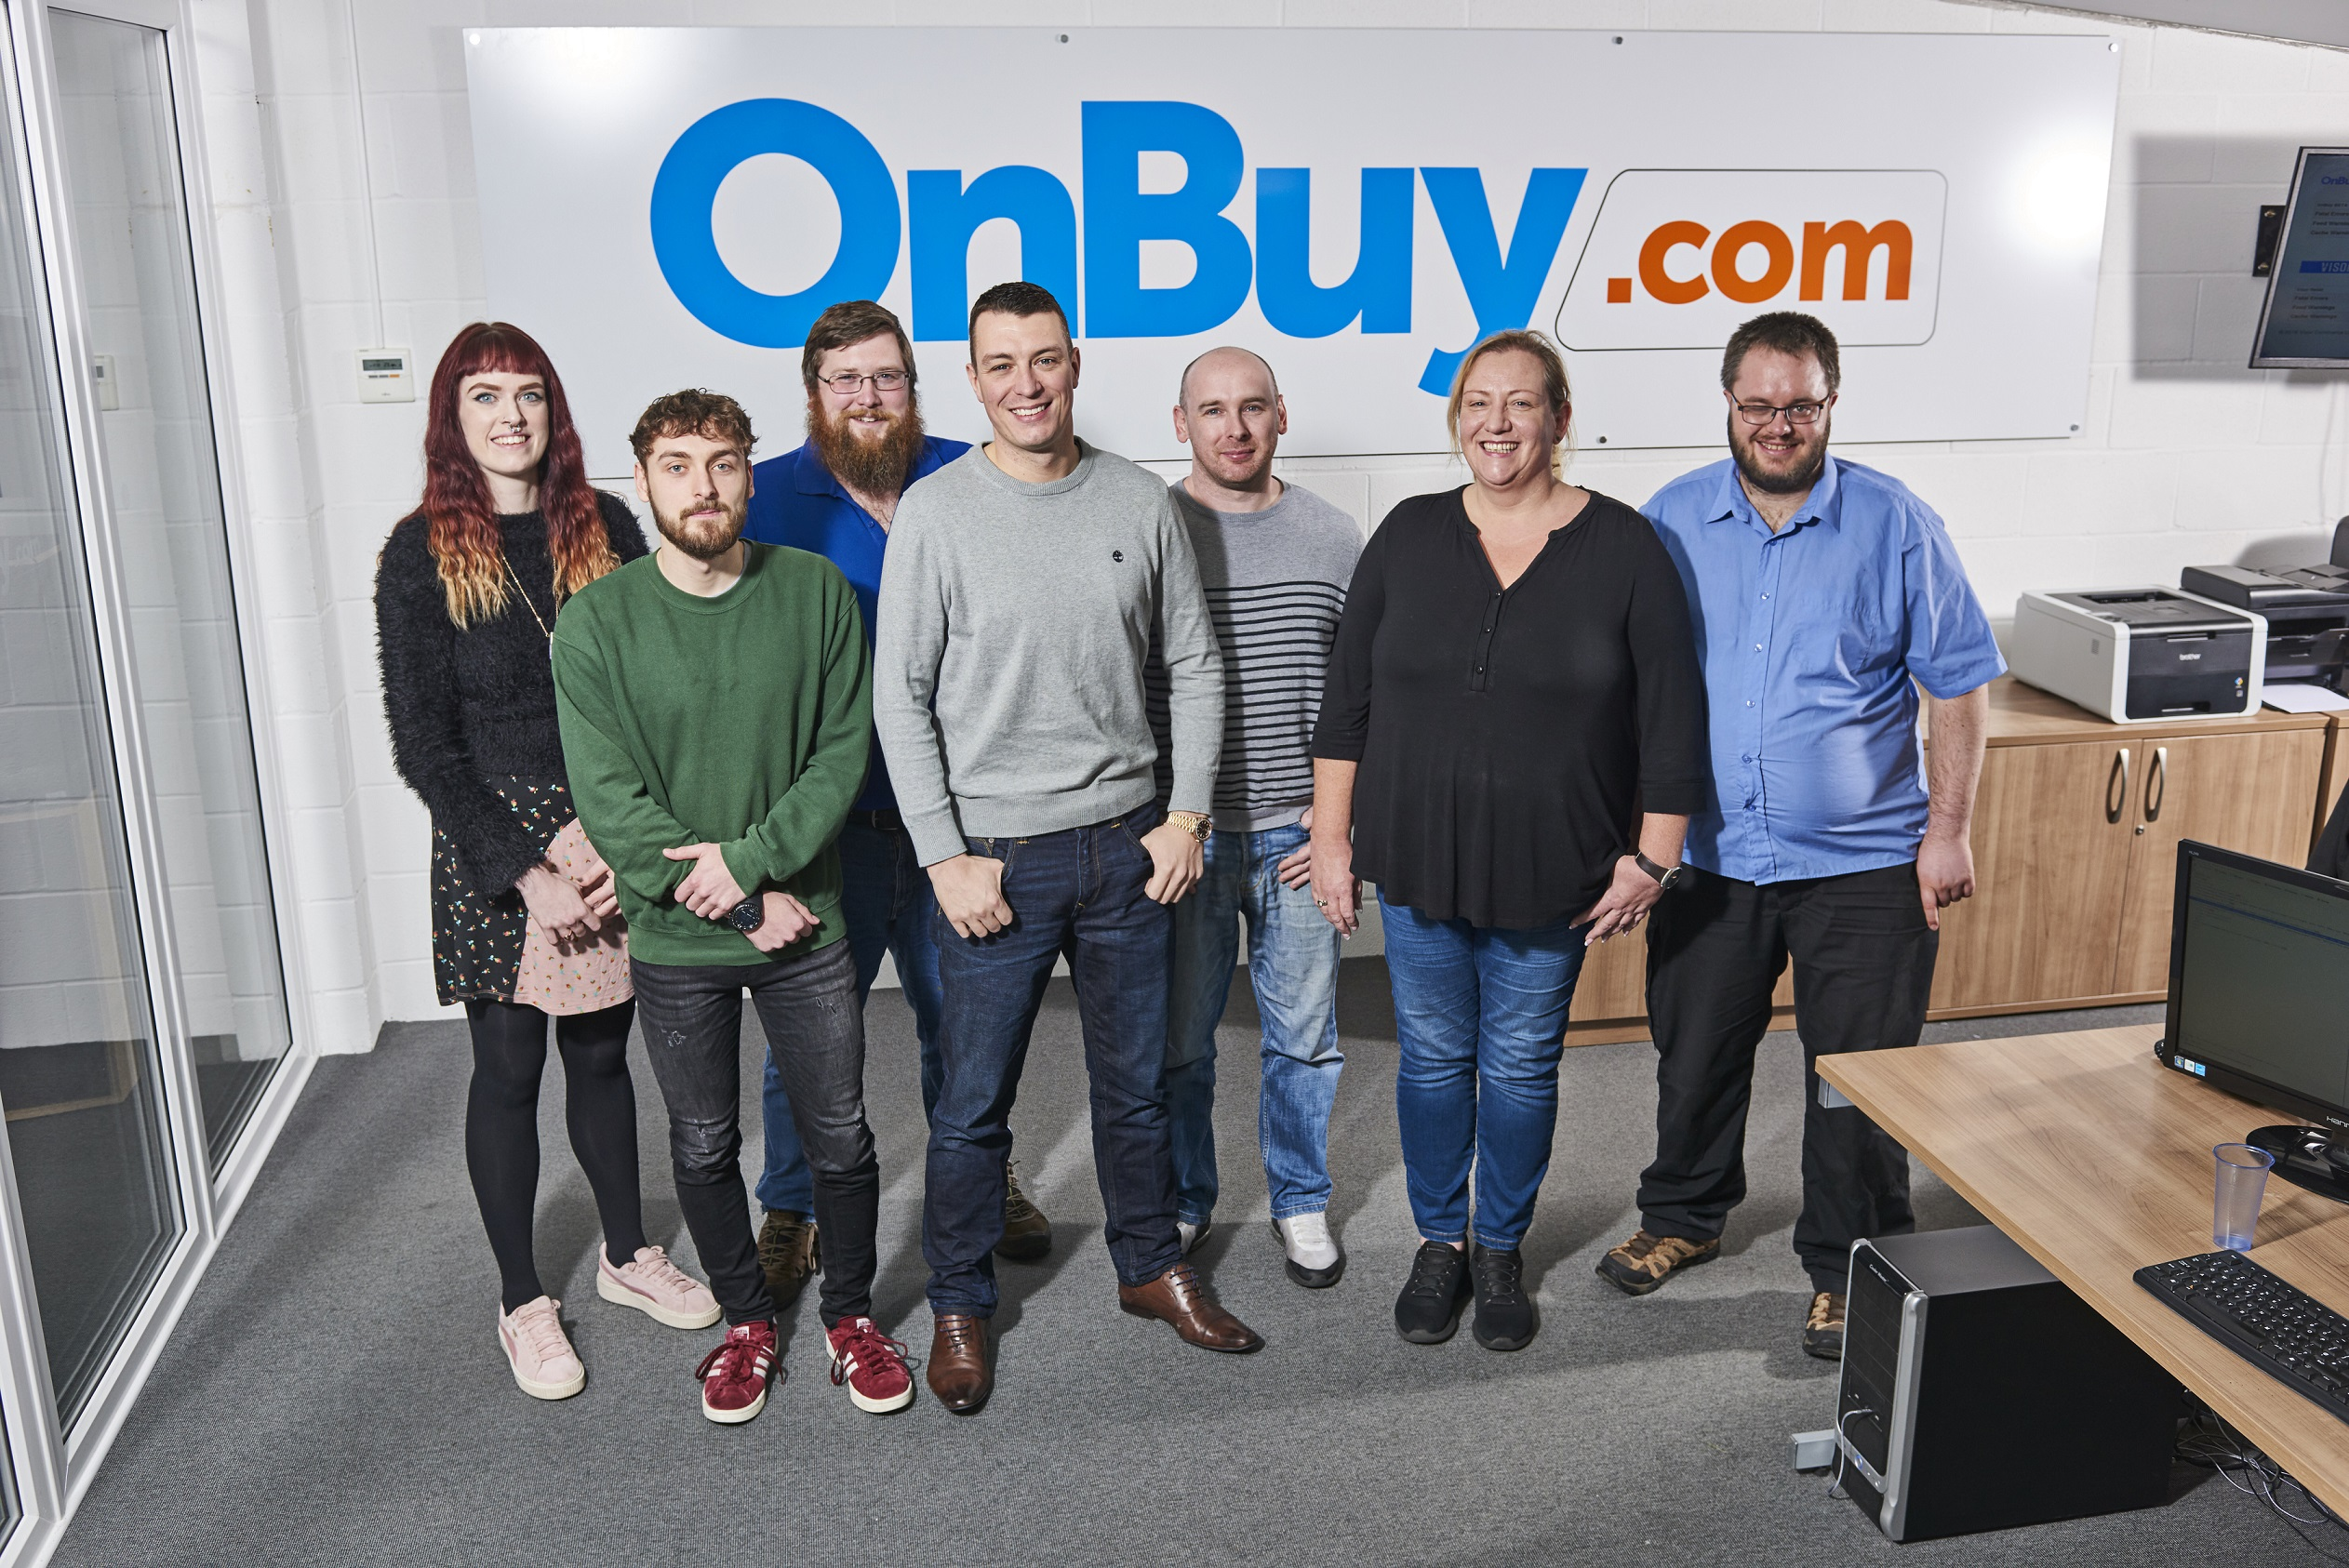 OnBuy.com announces new payment gateway with PayPal